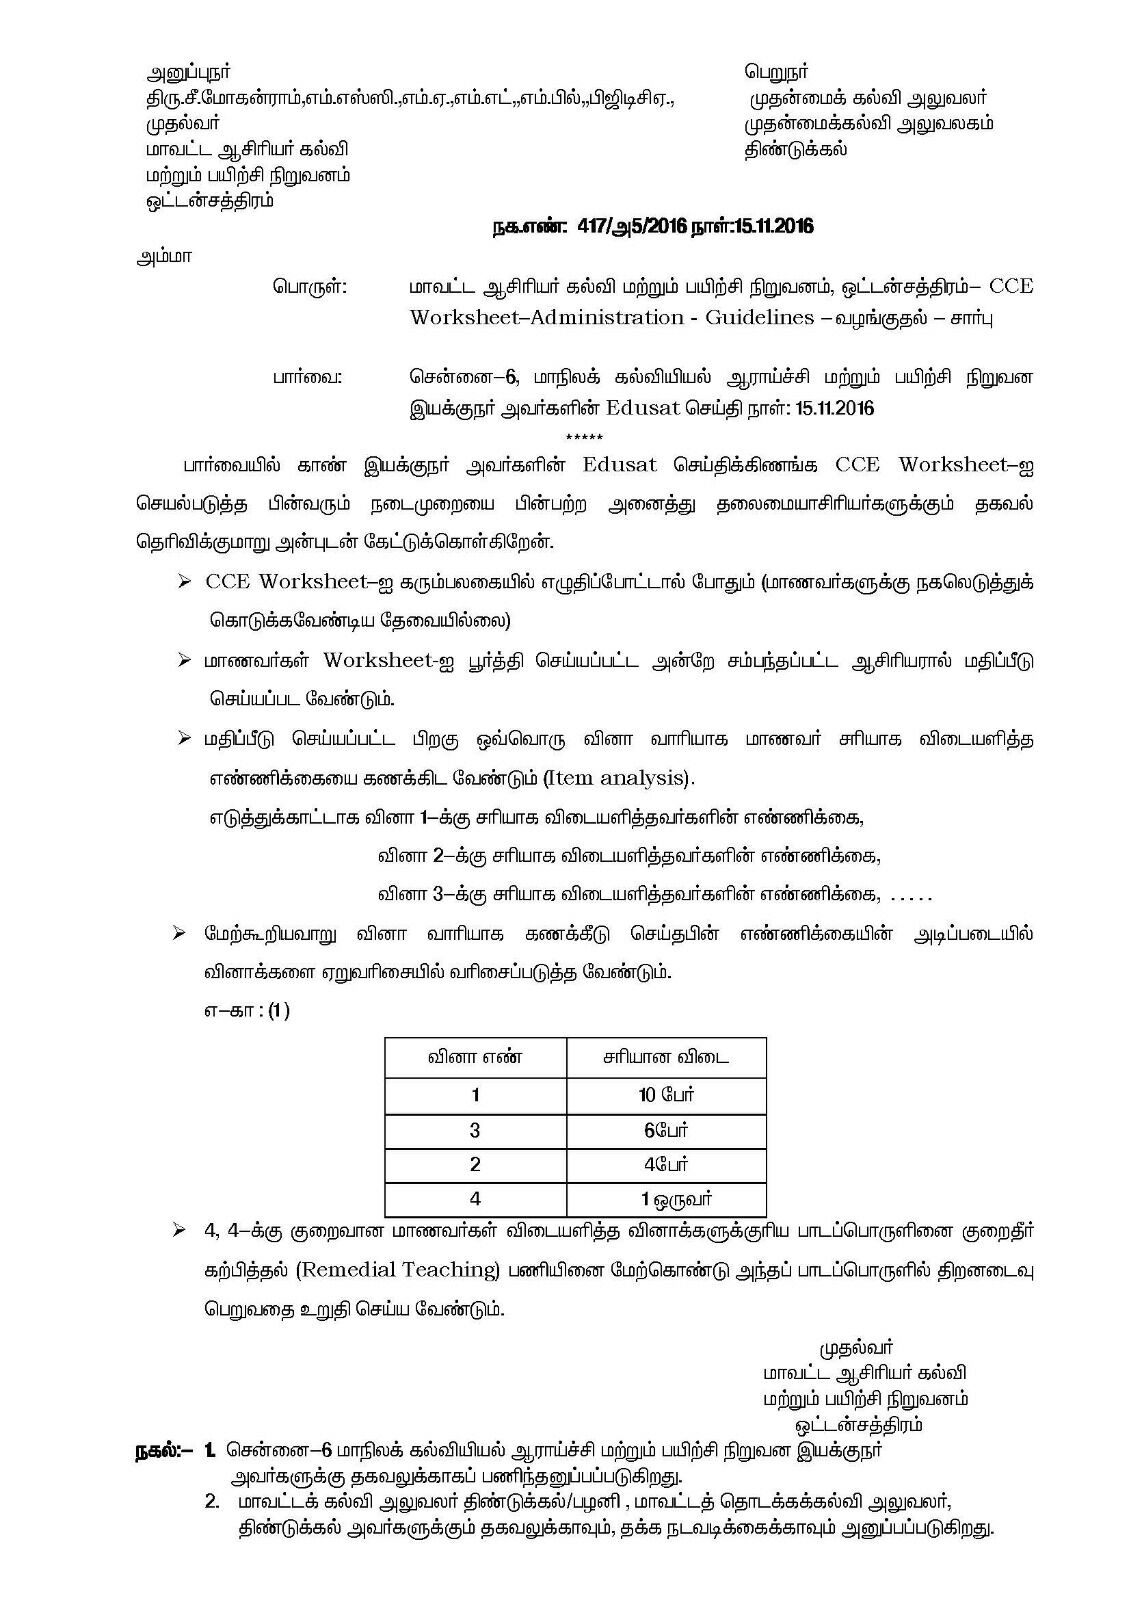 Gurukulam Cce Worksheet Exam Guidelines Proceeding